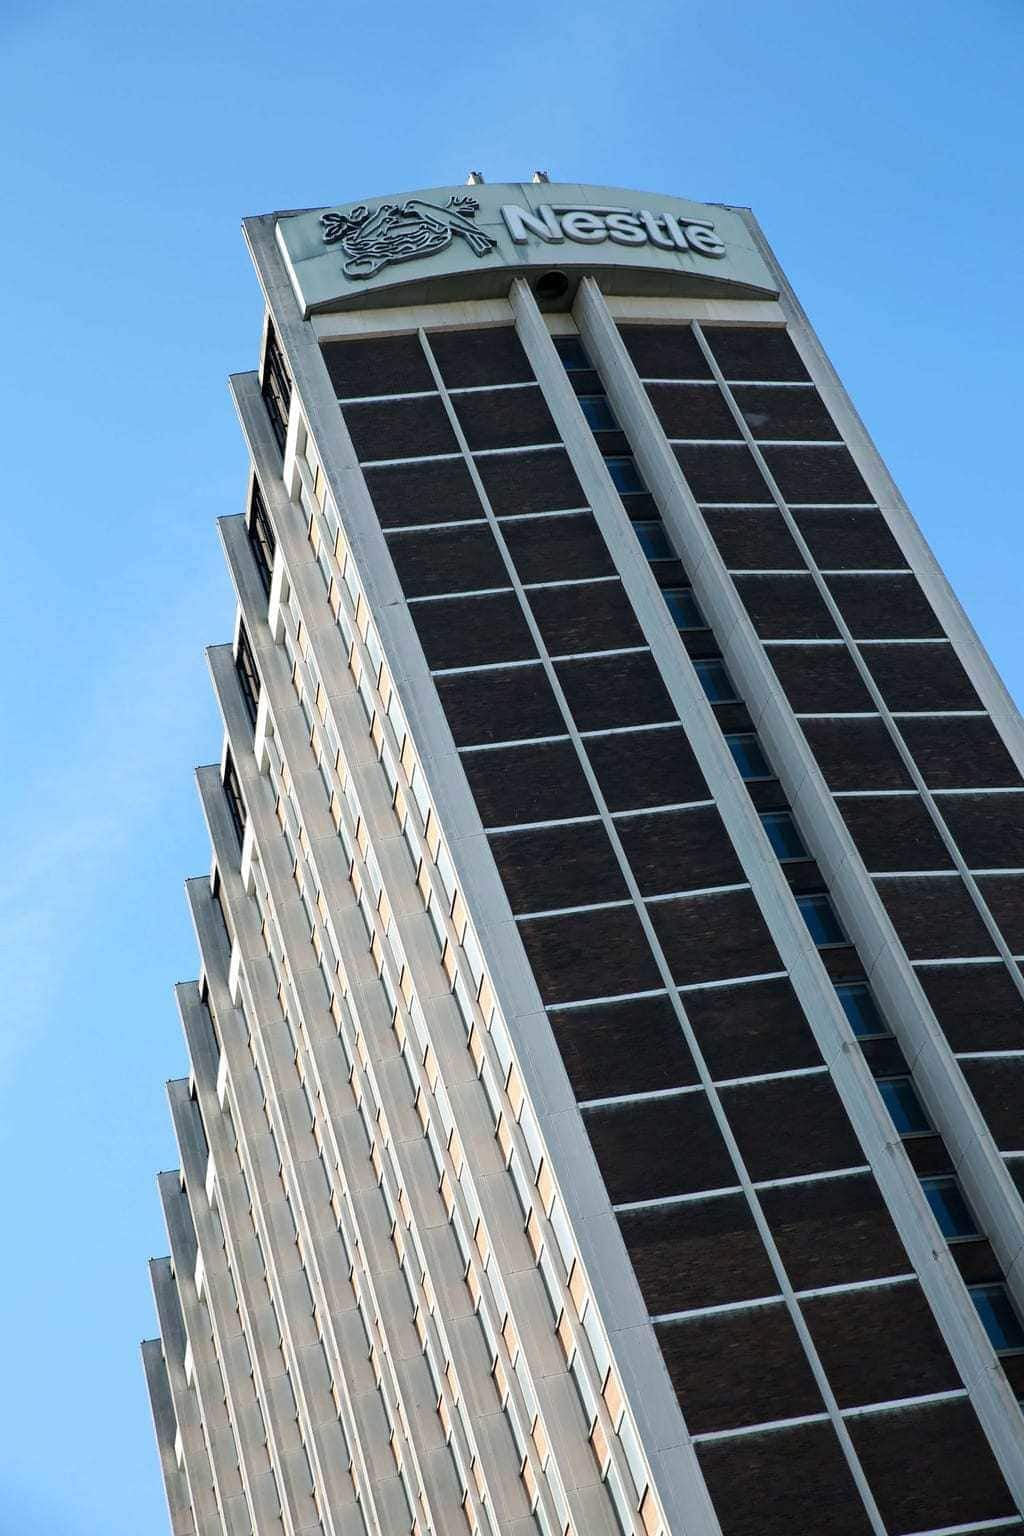 This is a shot of the Nestle tower in Croydon CRO, By Dpi Photography.